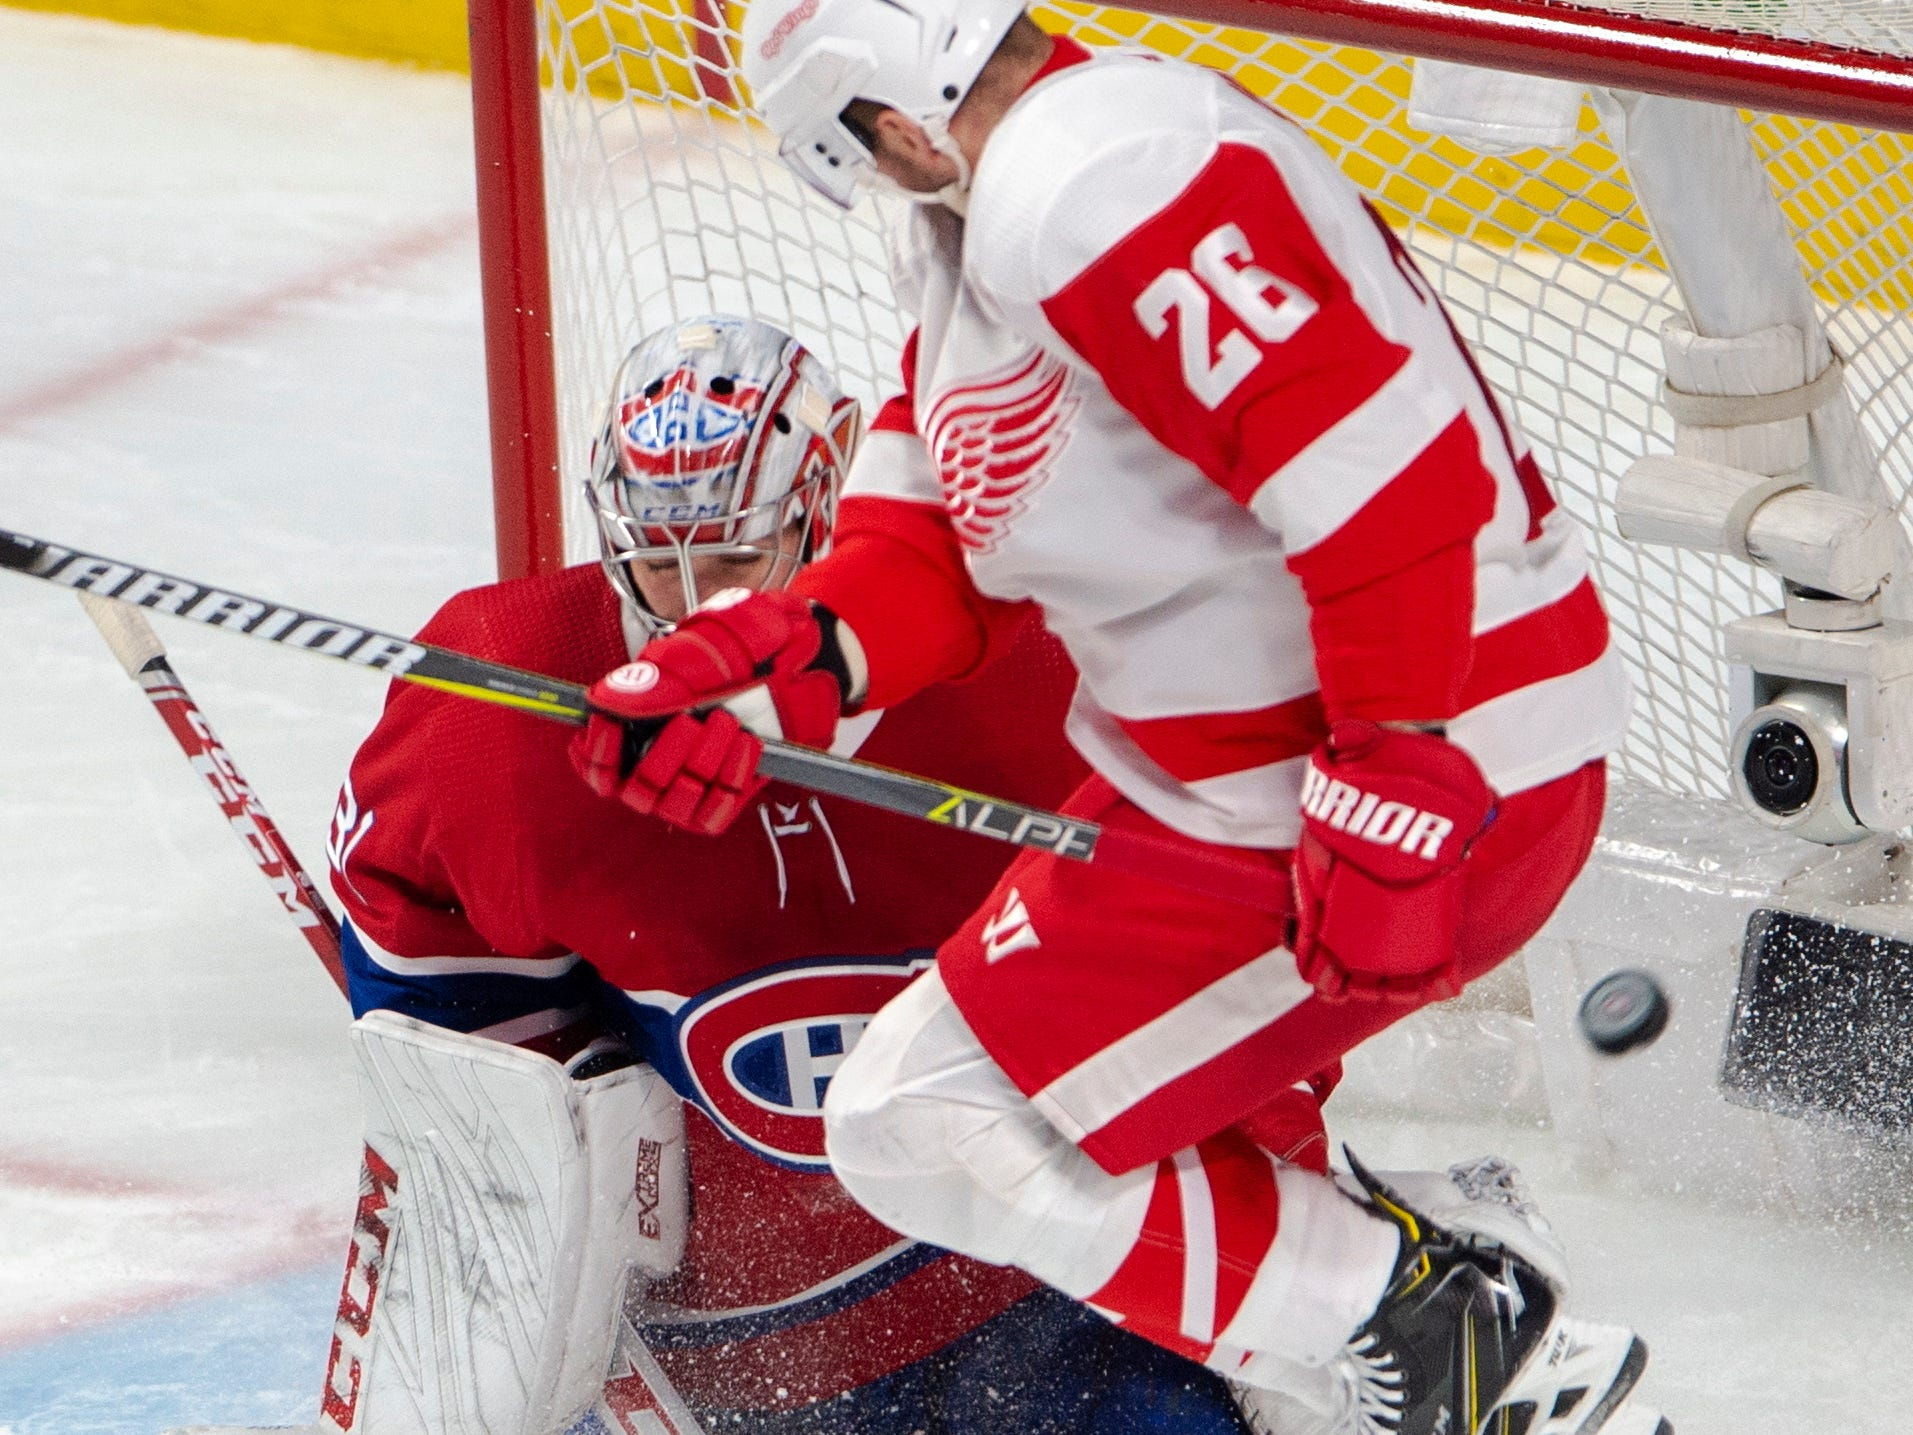 Detroit Red Wings left wing Thomas Vanek (26) jumps in front of Montreal Canadiens goaltender Carey Price (31) during the first period on Tuesday, March 12, 2019, in Montreal.